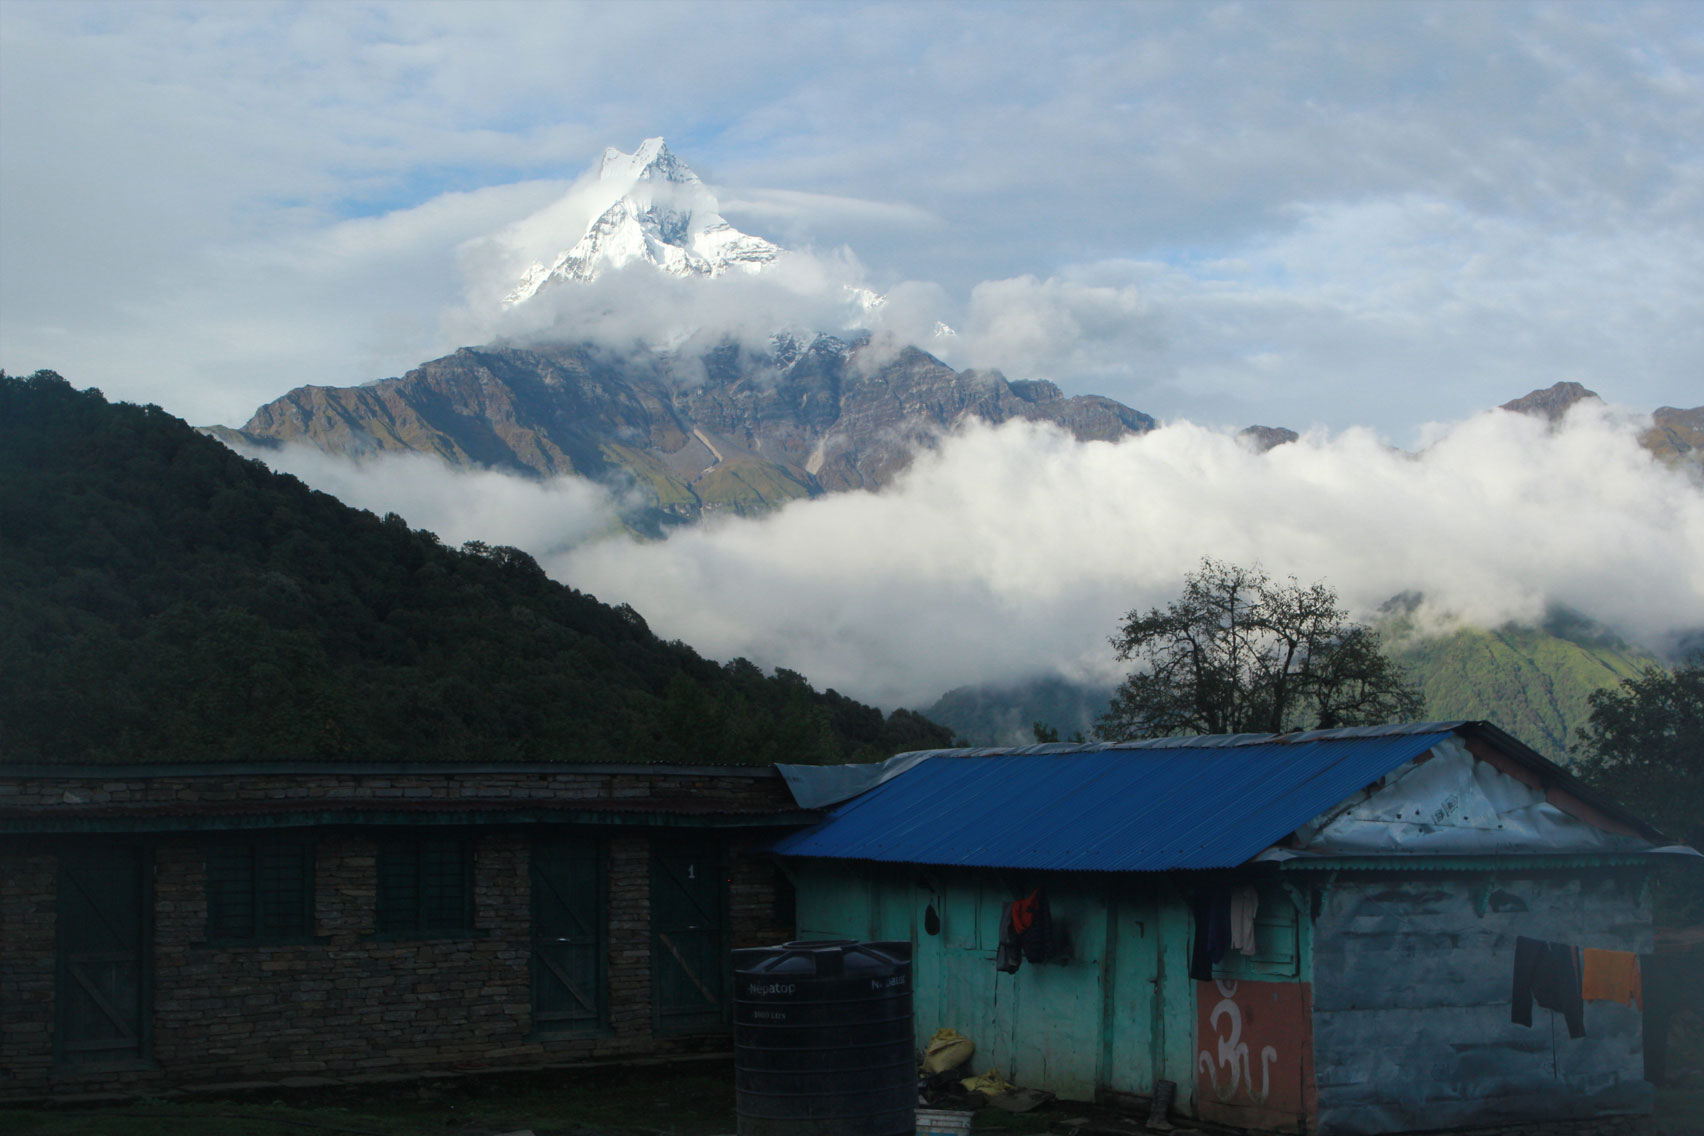 Day 4: Trek from Pothana (1890m) to Jungle Camp/Koker (5 hrs, 2525m)